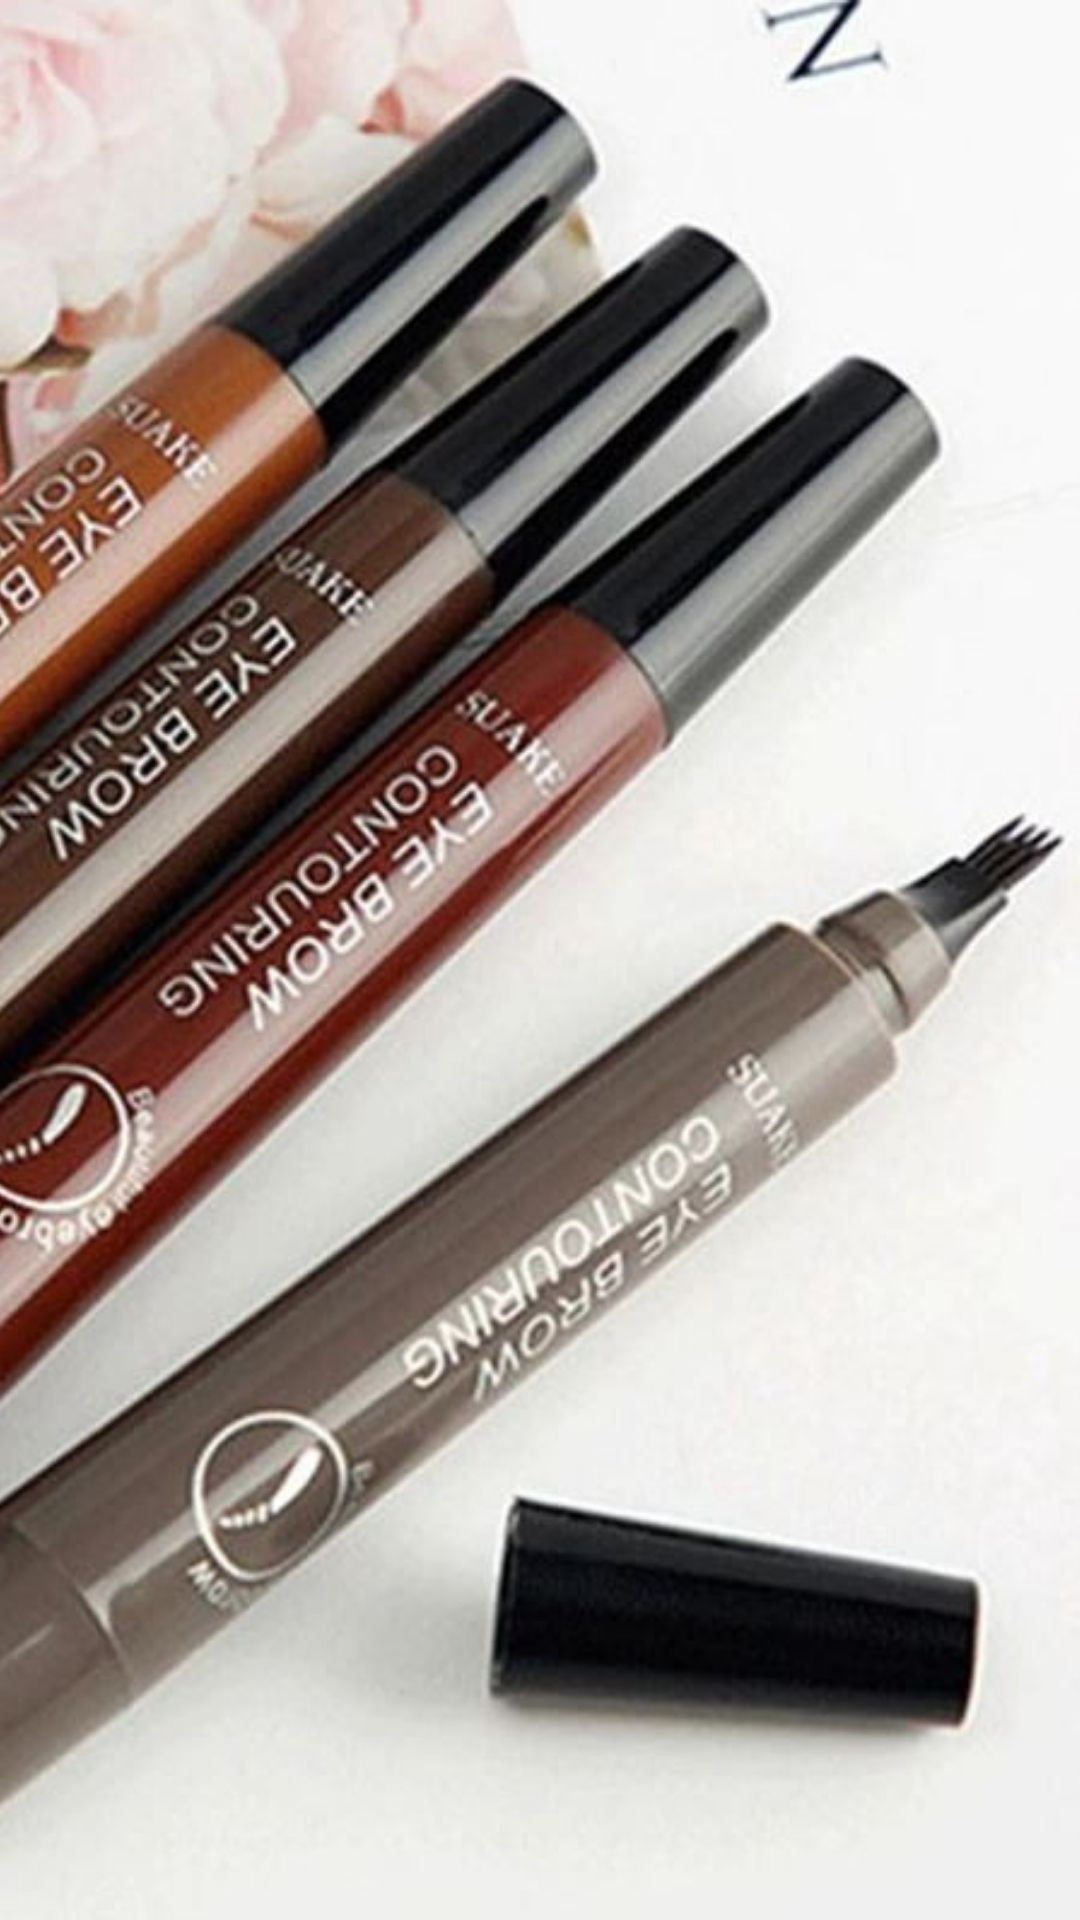 Photo of Waterproof Microblading Eyebrow Pen